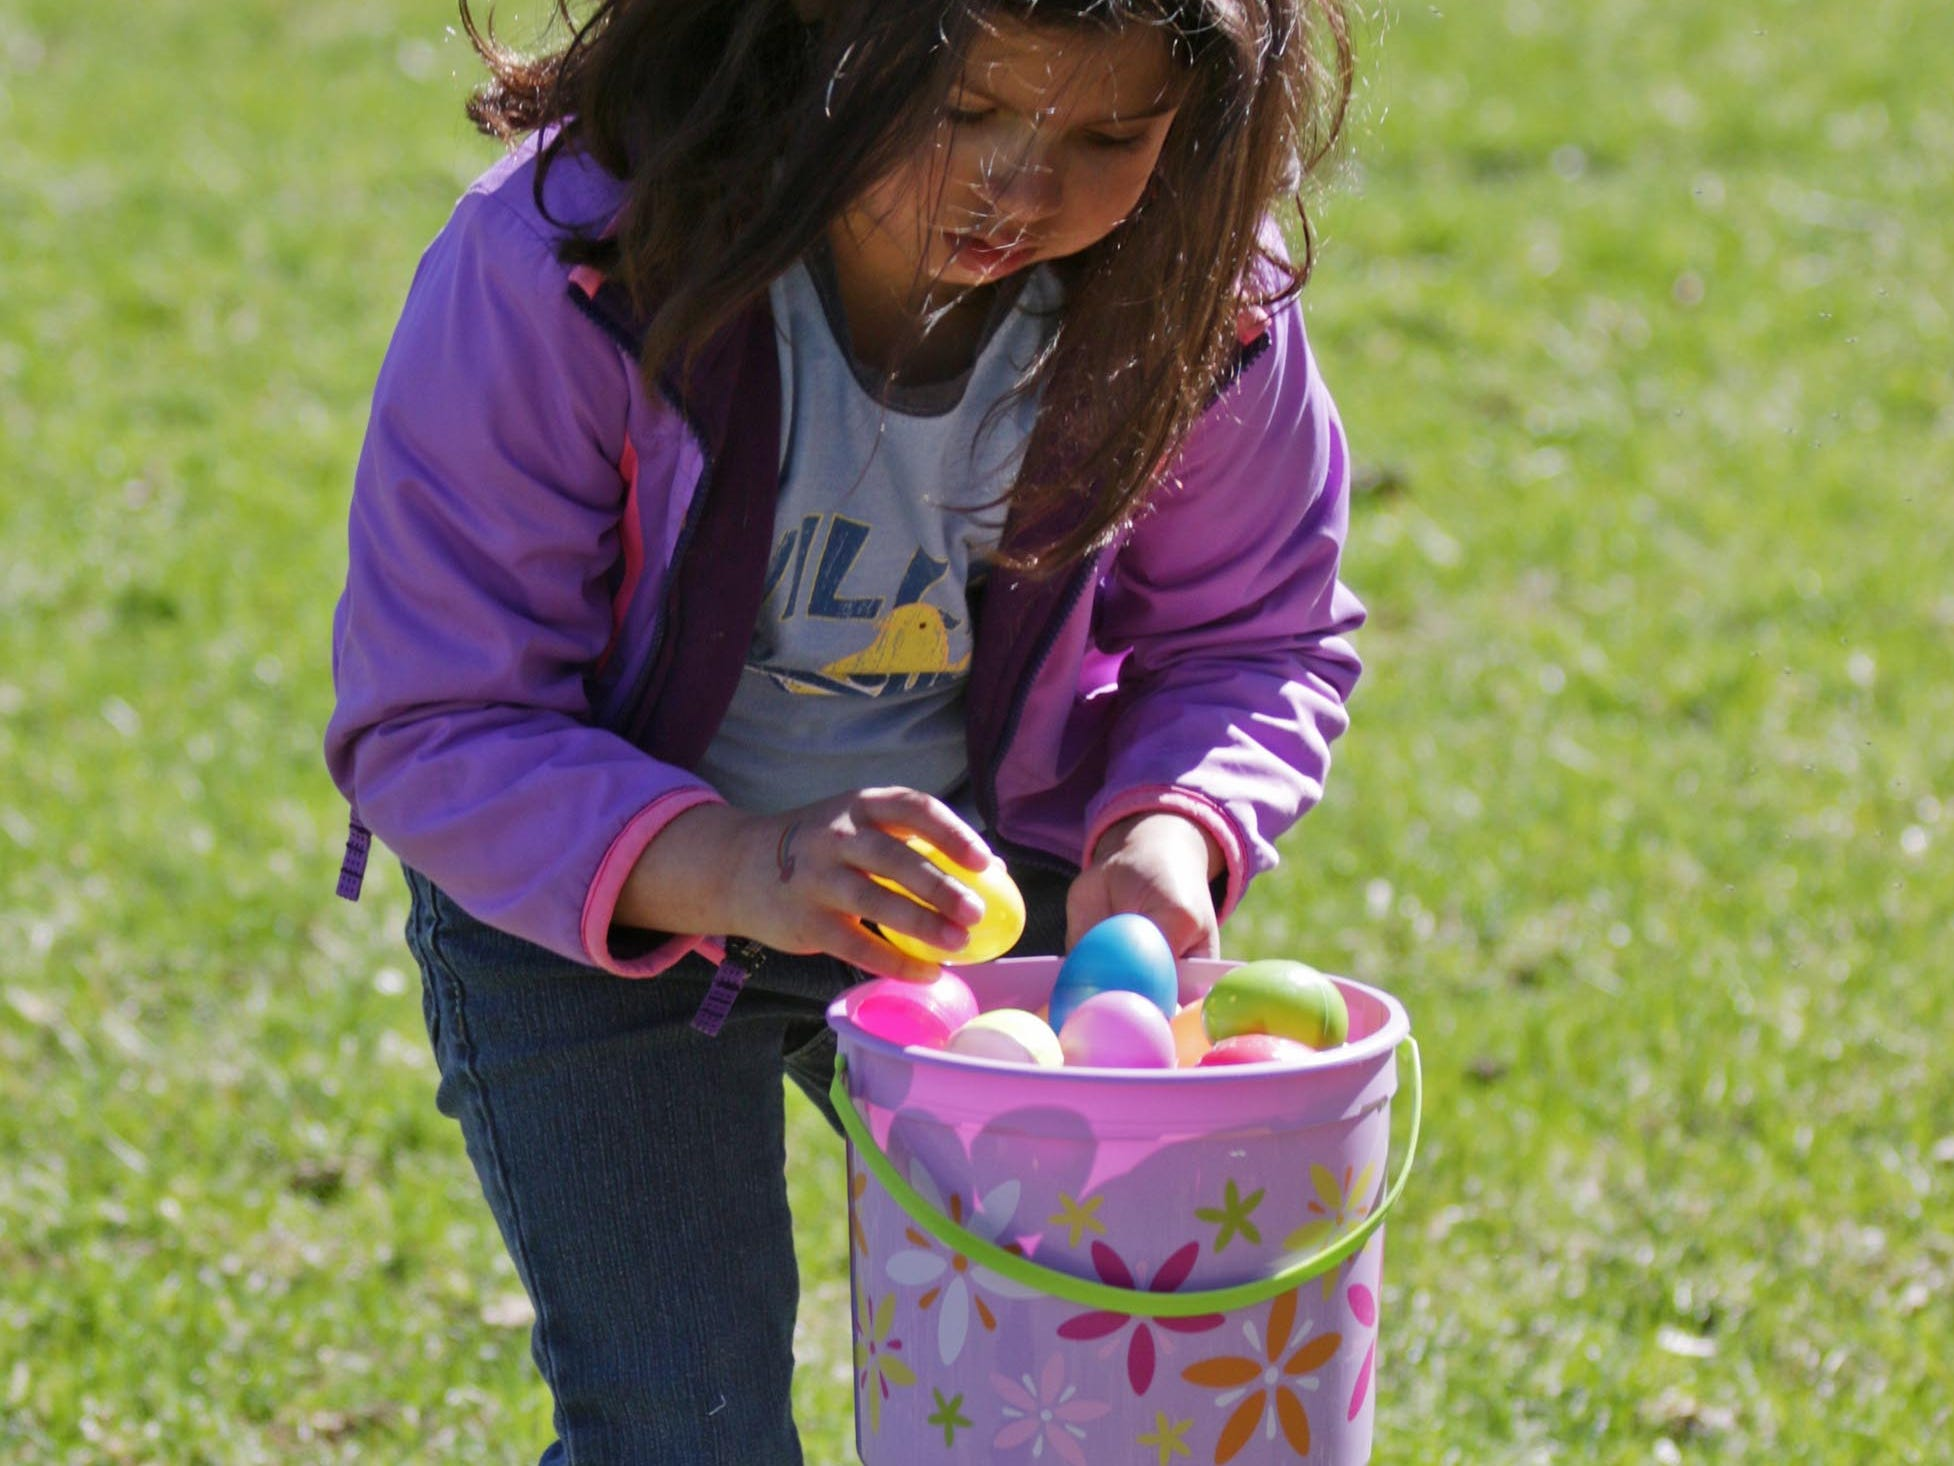 Neenah Rogers, 7, of Sheboygan, gathers eggs at the Hocevar Easter Egg Hunt, Saturday, April 20, 2019, in Sheboygan Falls, Wis.  This years marks 25 years for the Hocevar Family holding an Easter egg hunt at their home, according to Kathy Hocevar.